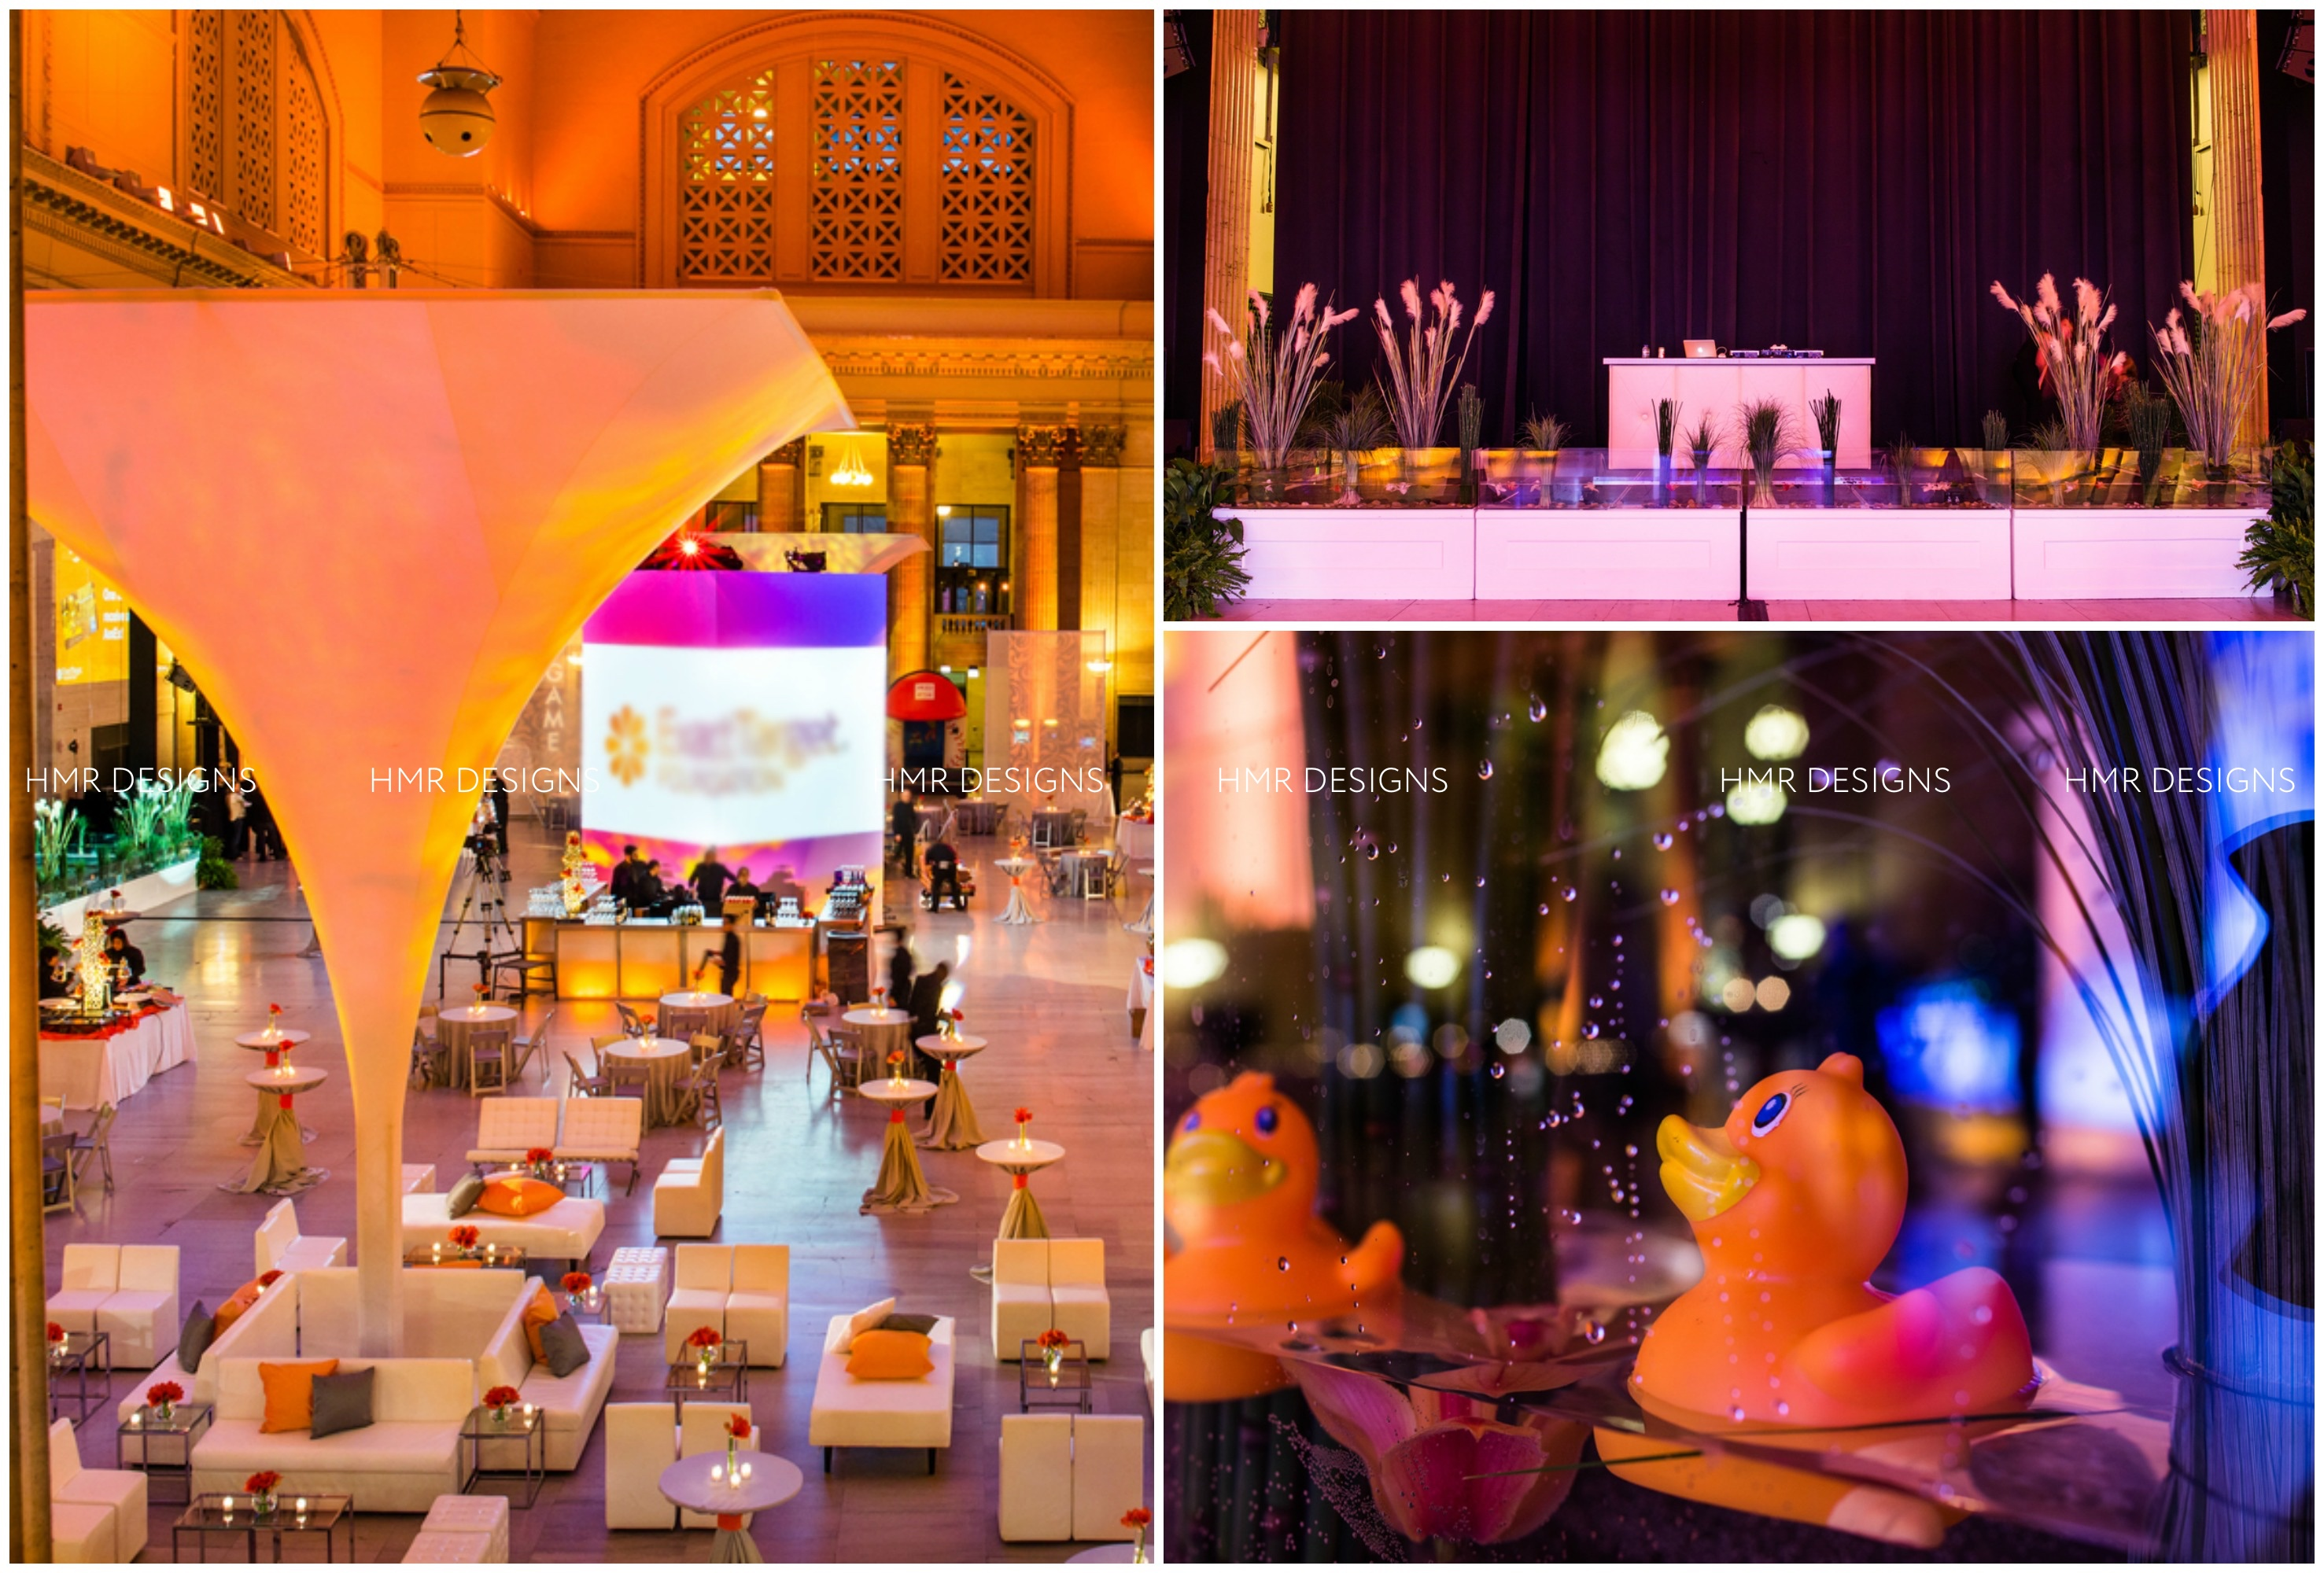 Union Station corporate event by HMR Designs